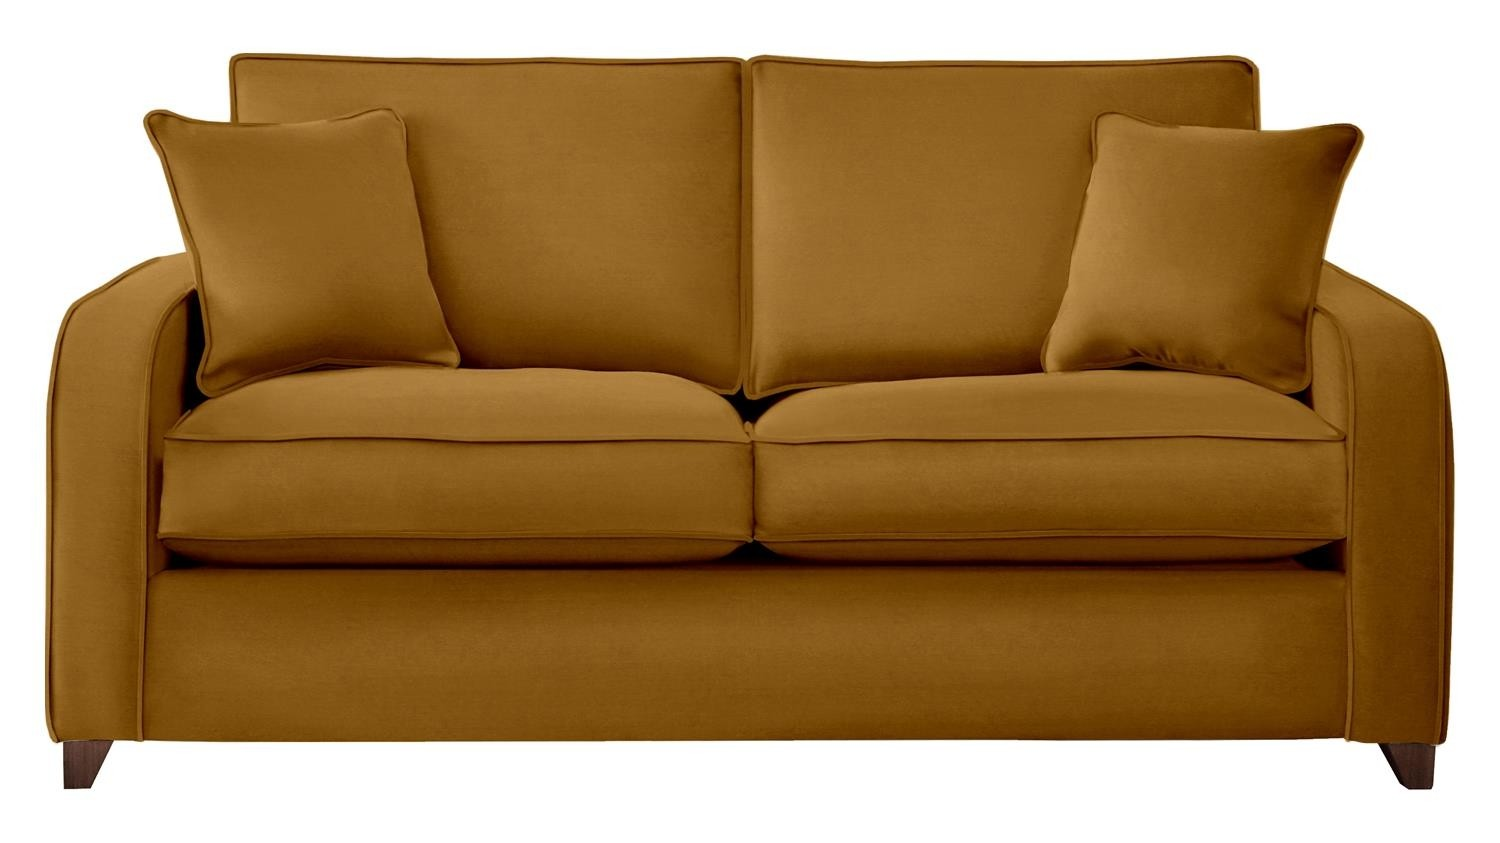 The Dunsmore 3.5 Seater Sofa